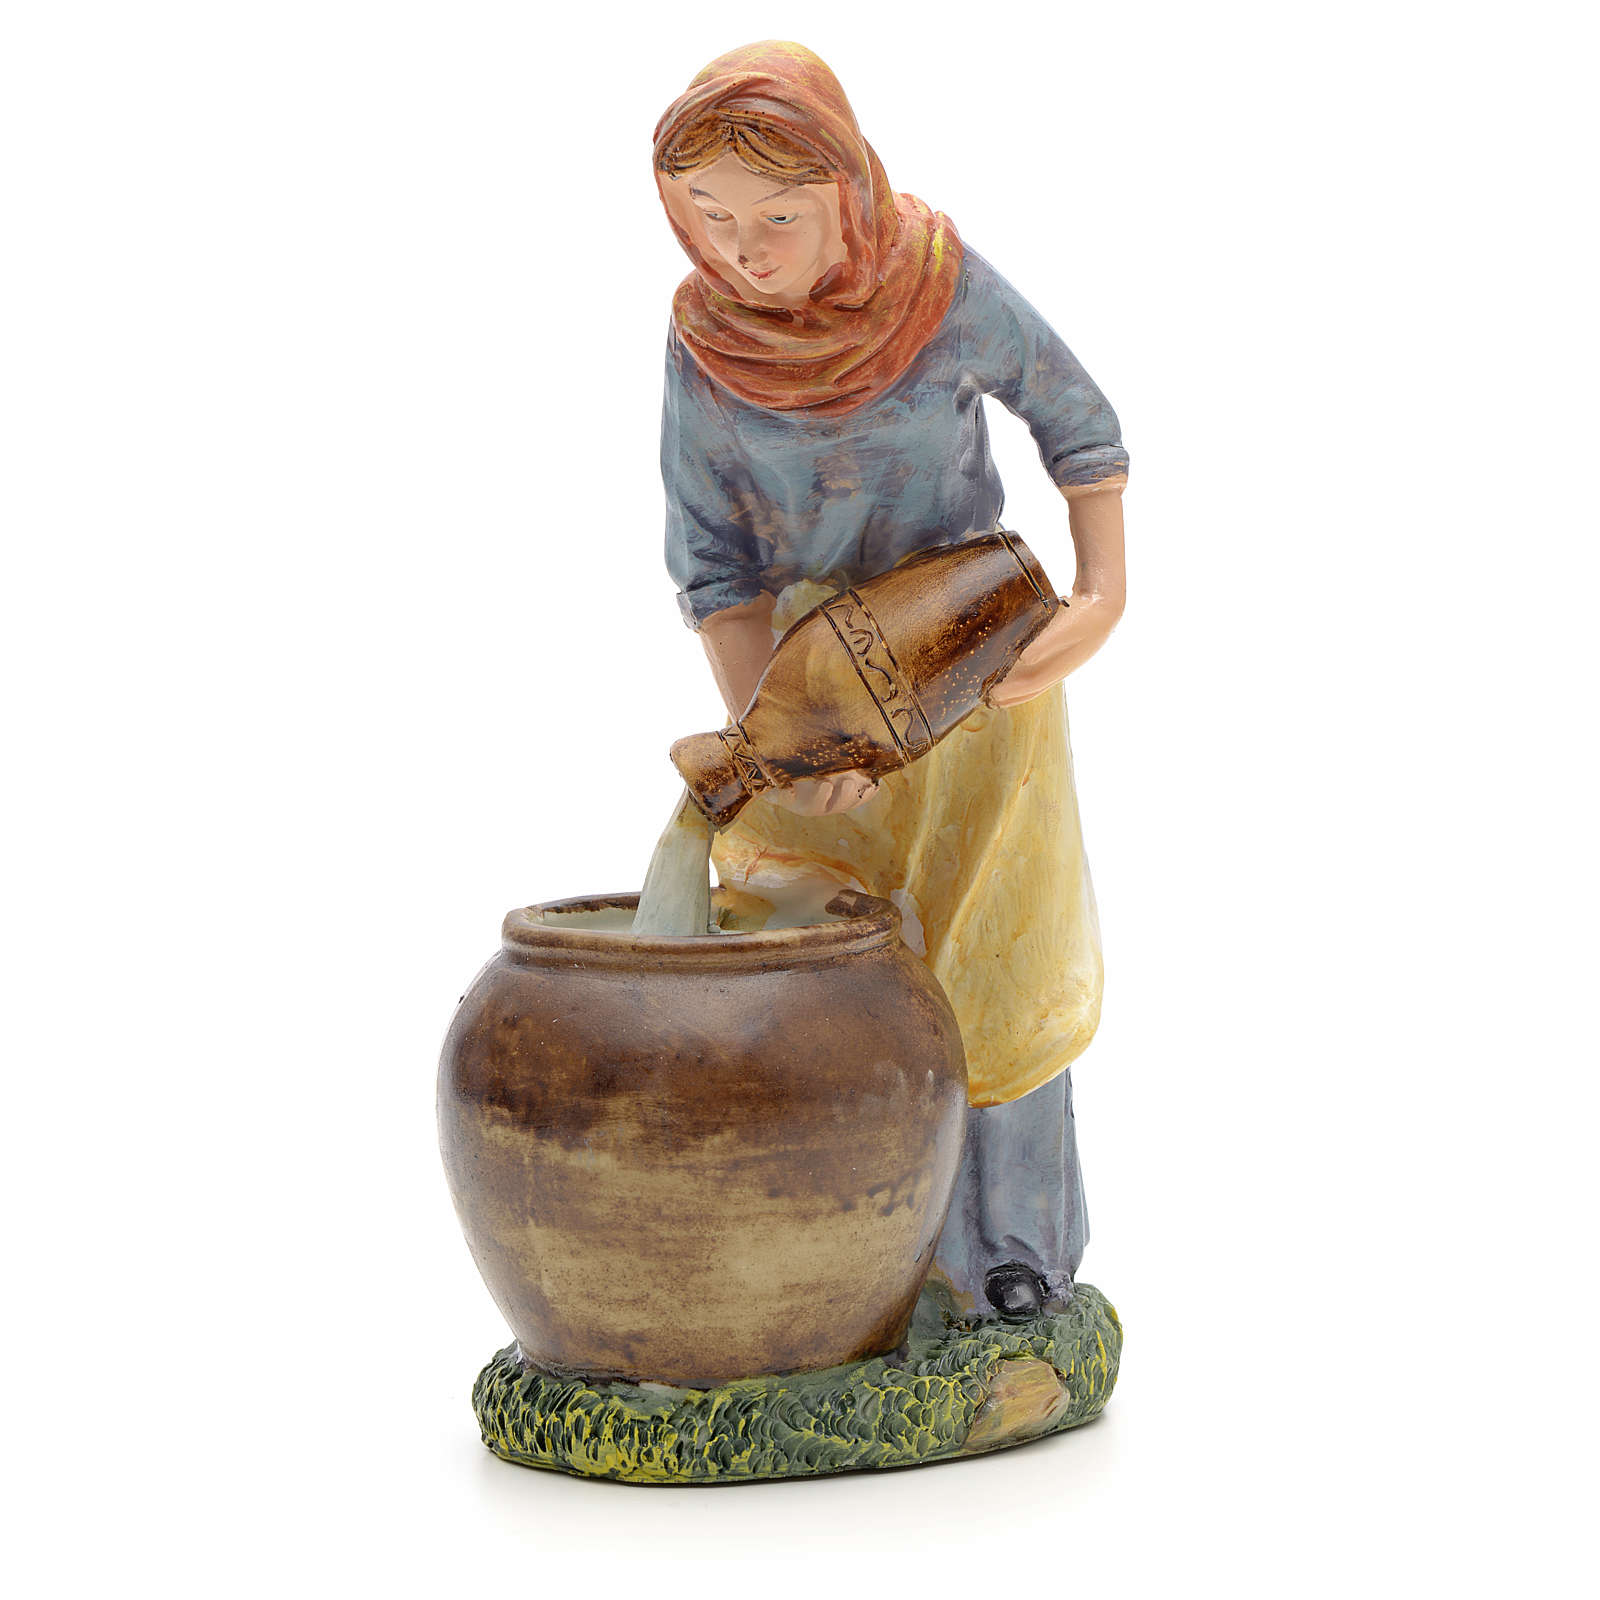 Woman pouring water figurine in resin for nativities of 21cm 3